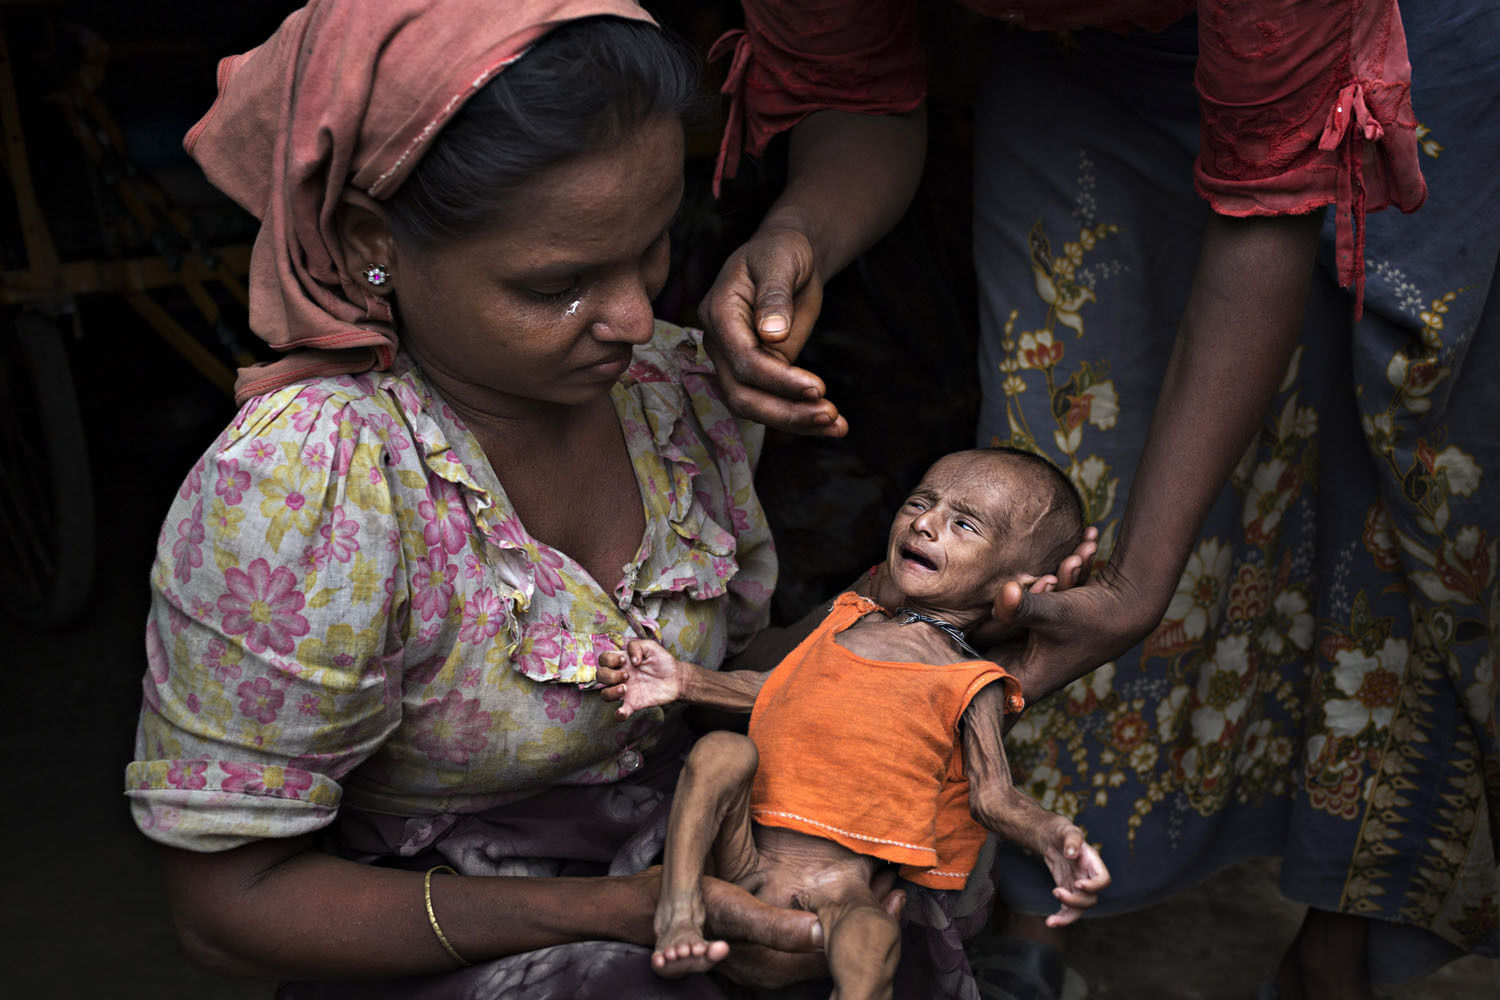 May 6, 2014. Rosheda, 20, holds her malnourished child, 2 months old, in front of her hut in Sittwe, Burma. She is too poor to afford enough food and the child will likely die without aid.